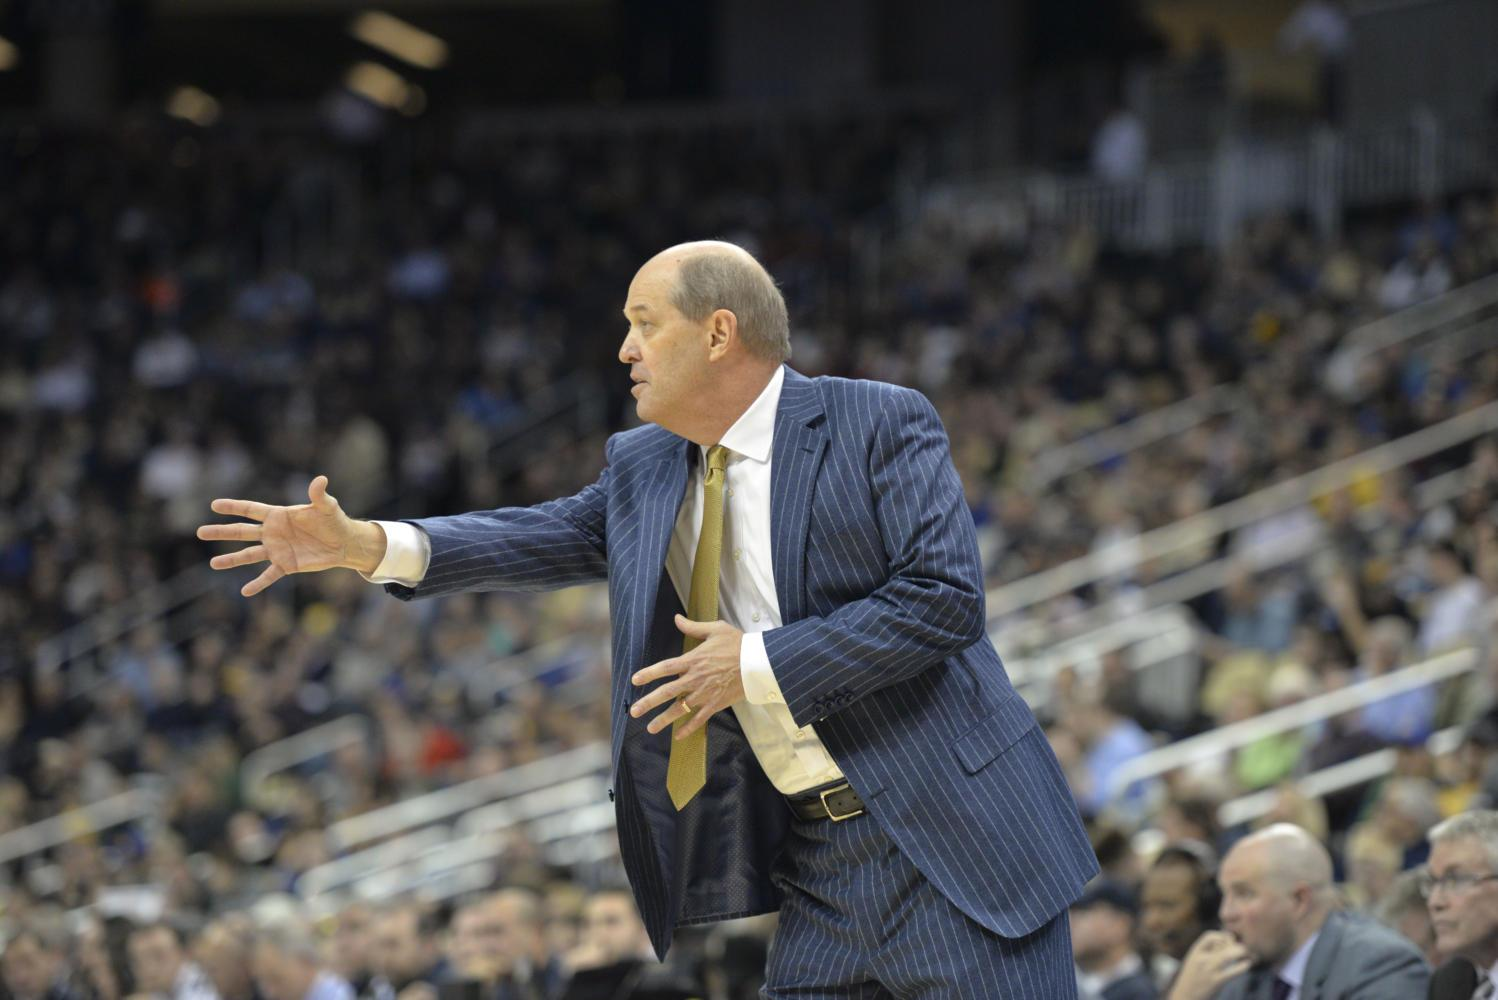 Men's basketball head coach Kevin Stallings has quickly become one of the most controversial figures in recent Pitt sports history, but he still deserves time to build his program. (Photo by John Hamilton | Editor-in-Chief)